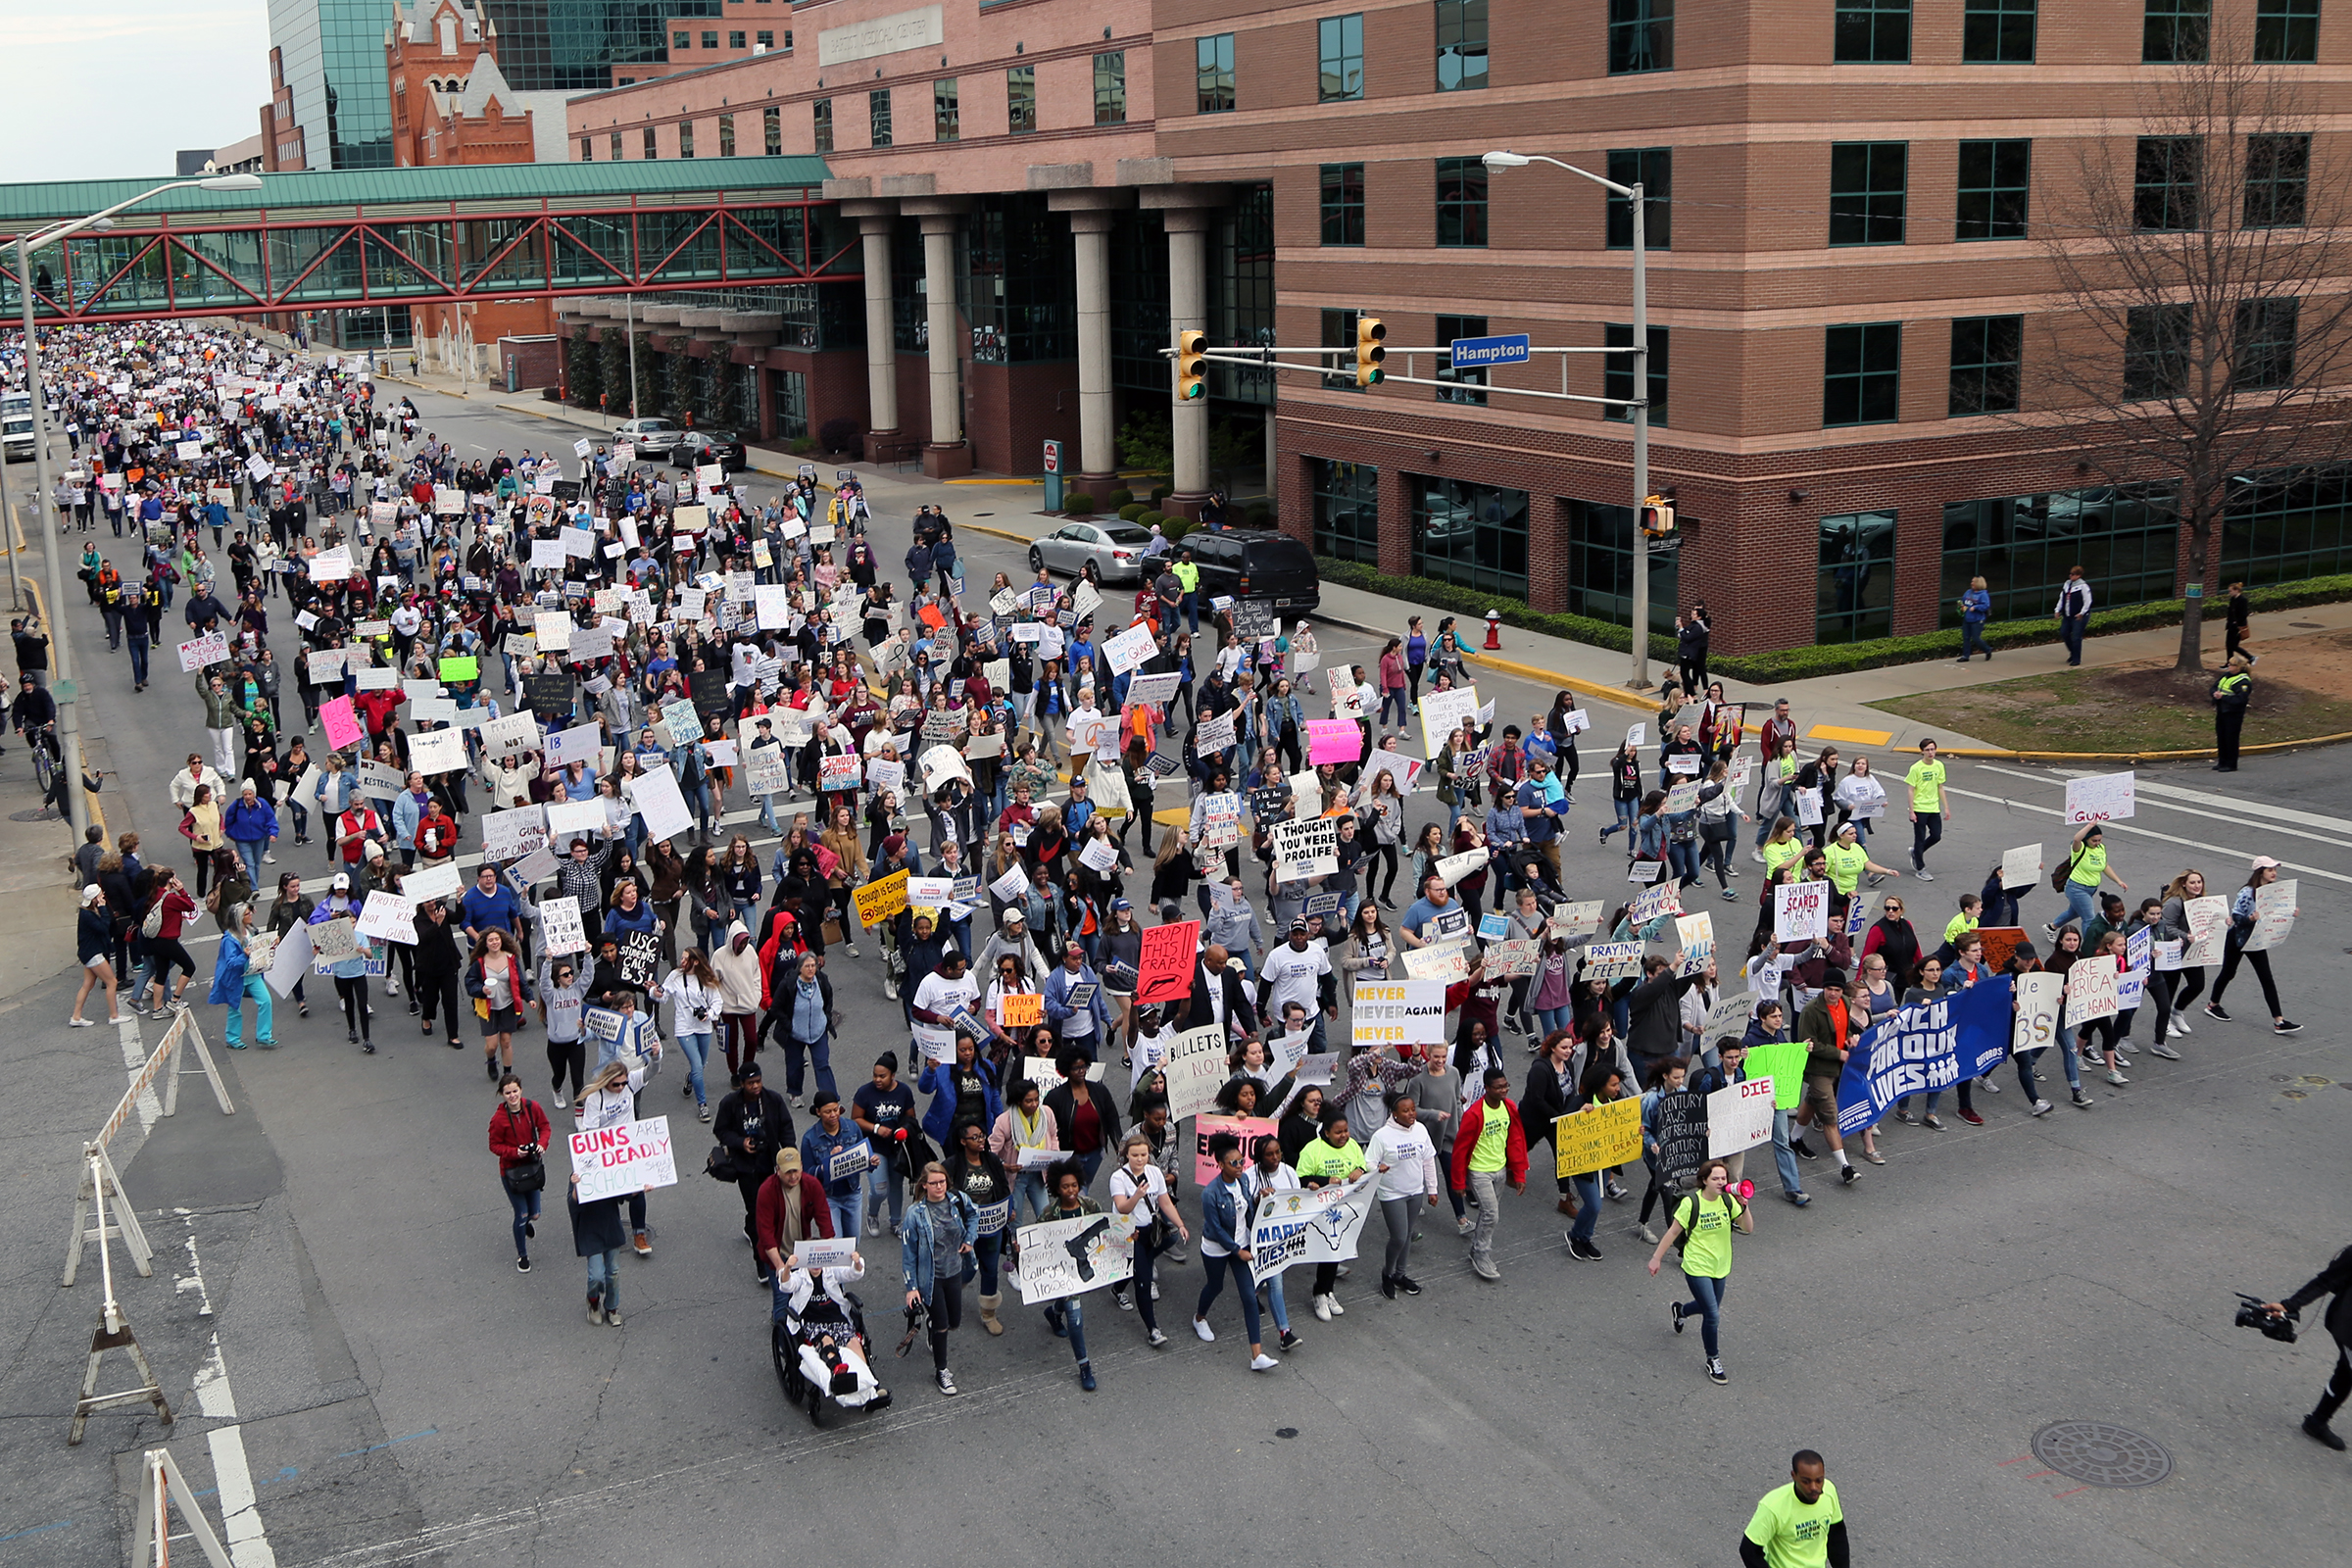 The mile-long March For Our Lives in Columbia took just 14 minutes, leaving journalists and photographers running to stay up.